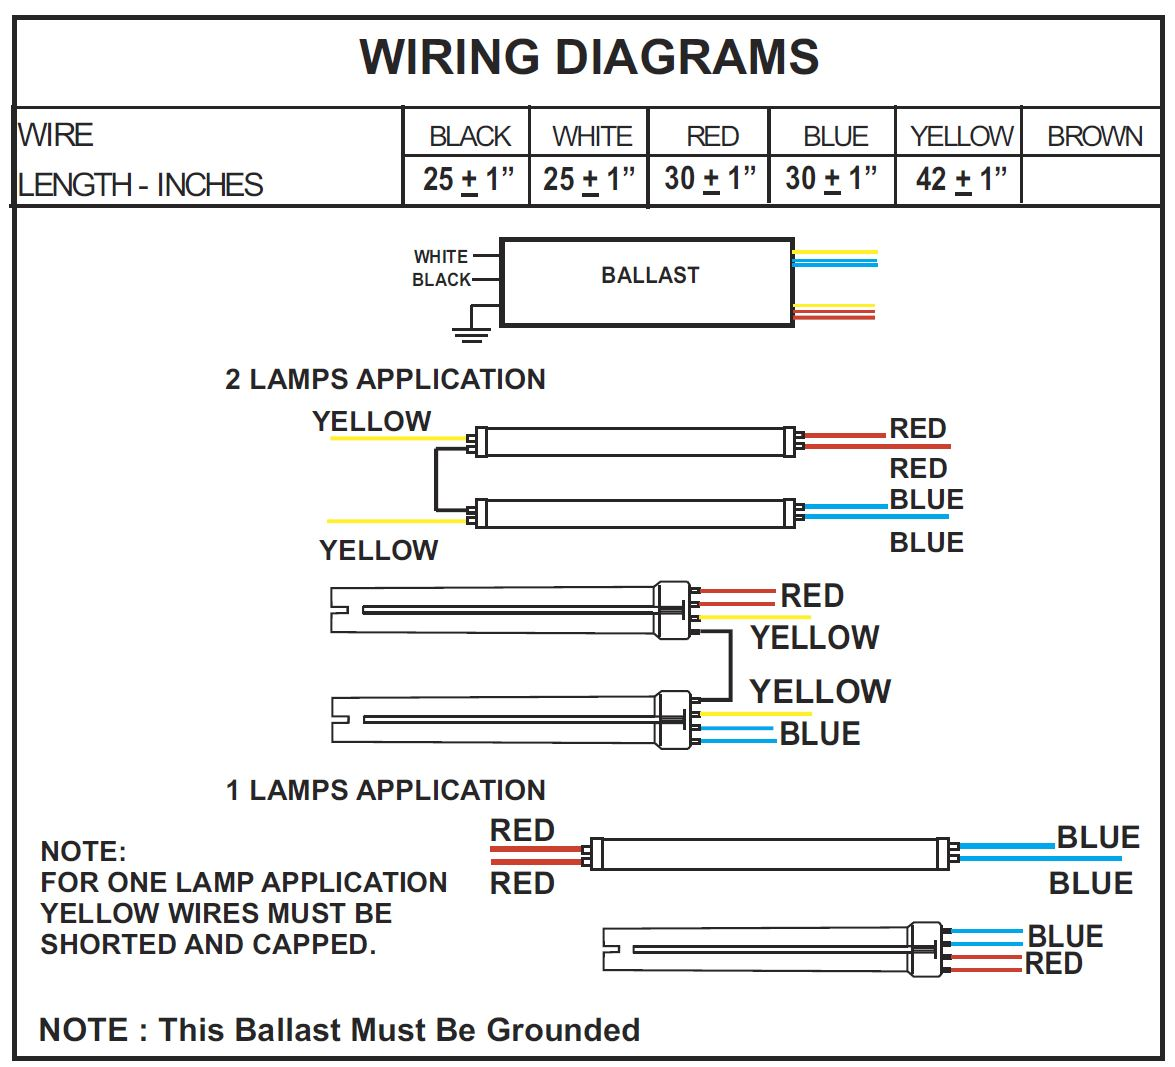 RHA UNV 254 LT5 wiring diagram rha unv 254 lt5 2 lamp t5 multi purpose electronic ballast T5 Fluorescent Ballast at fashall.co